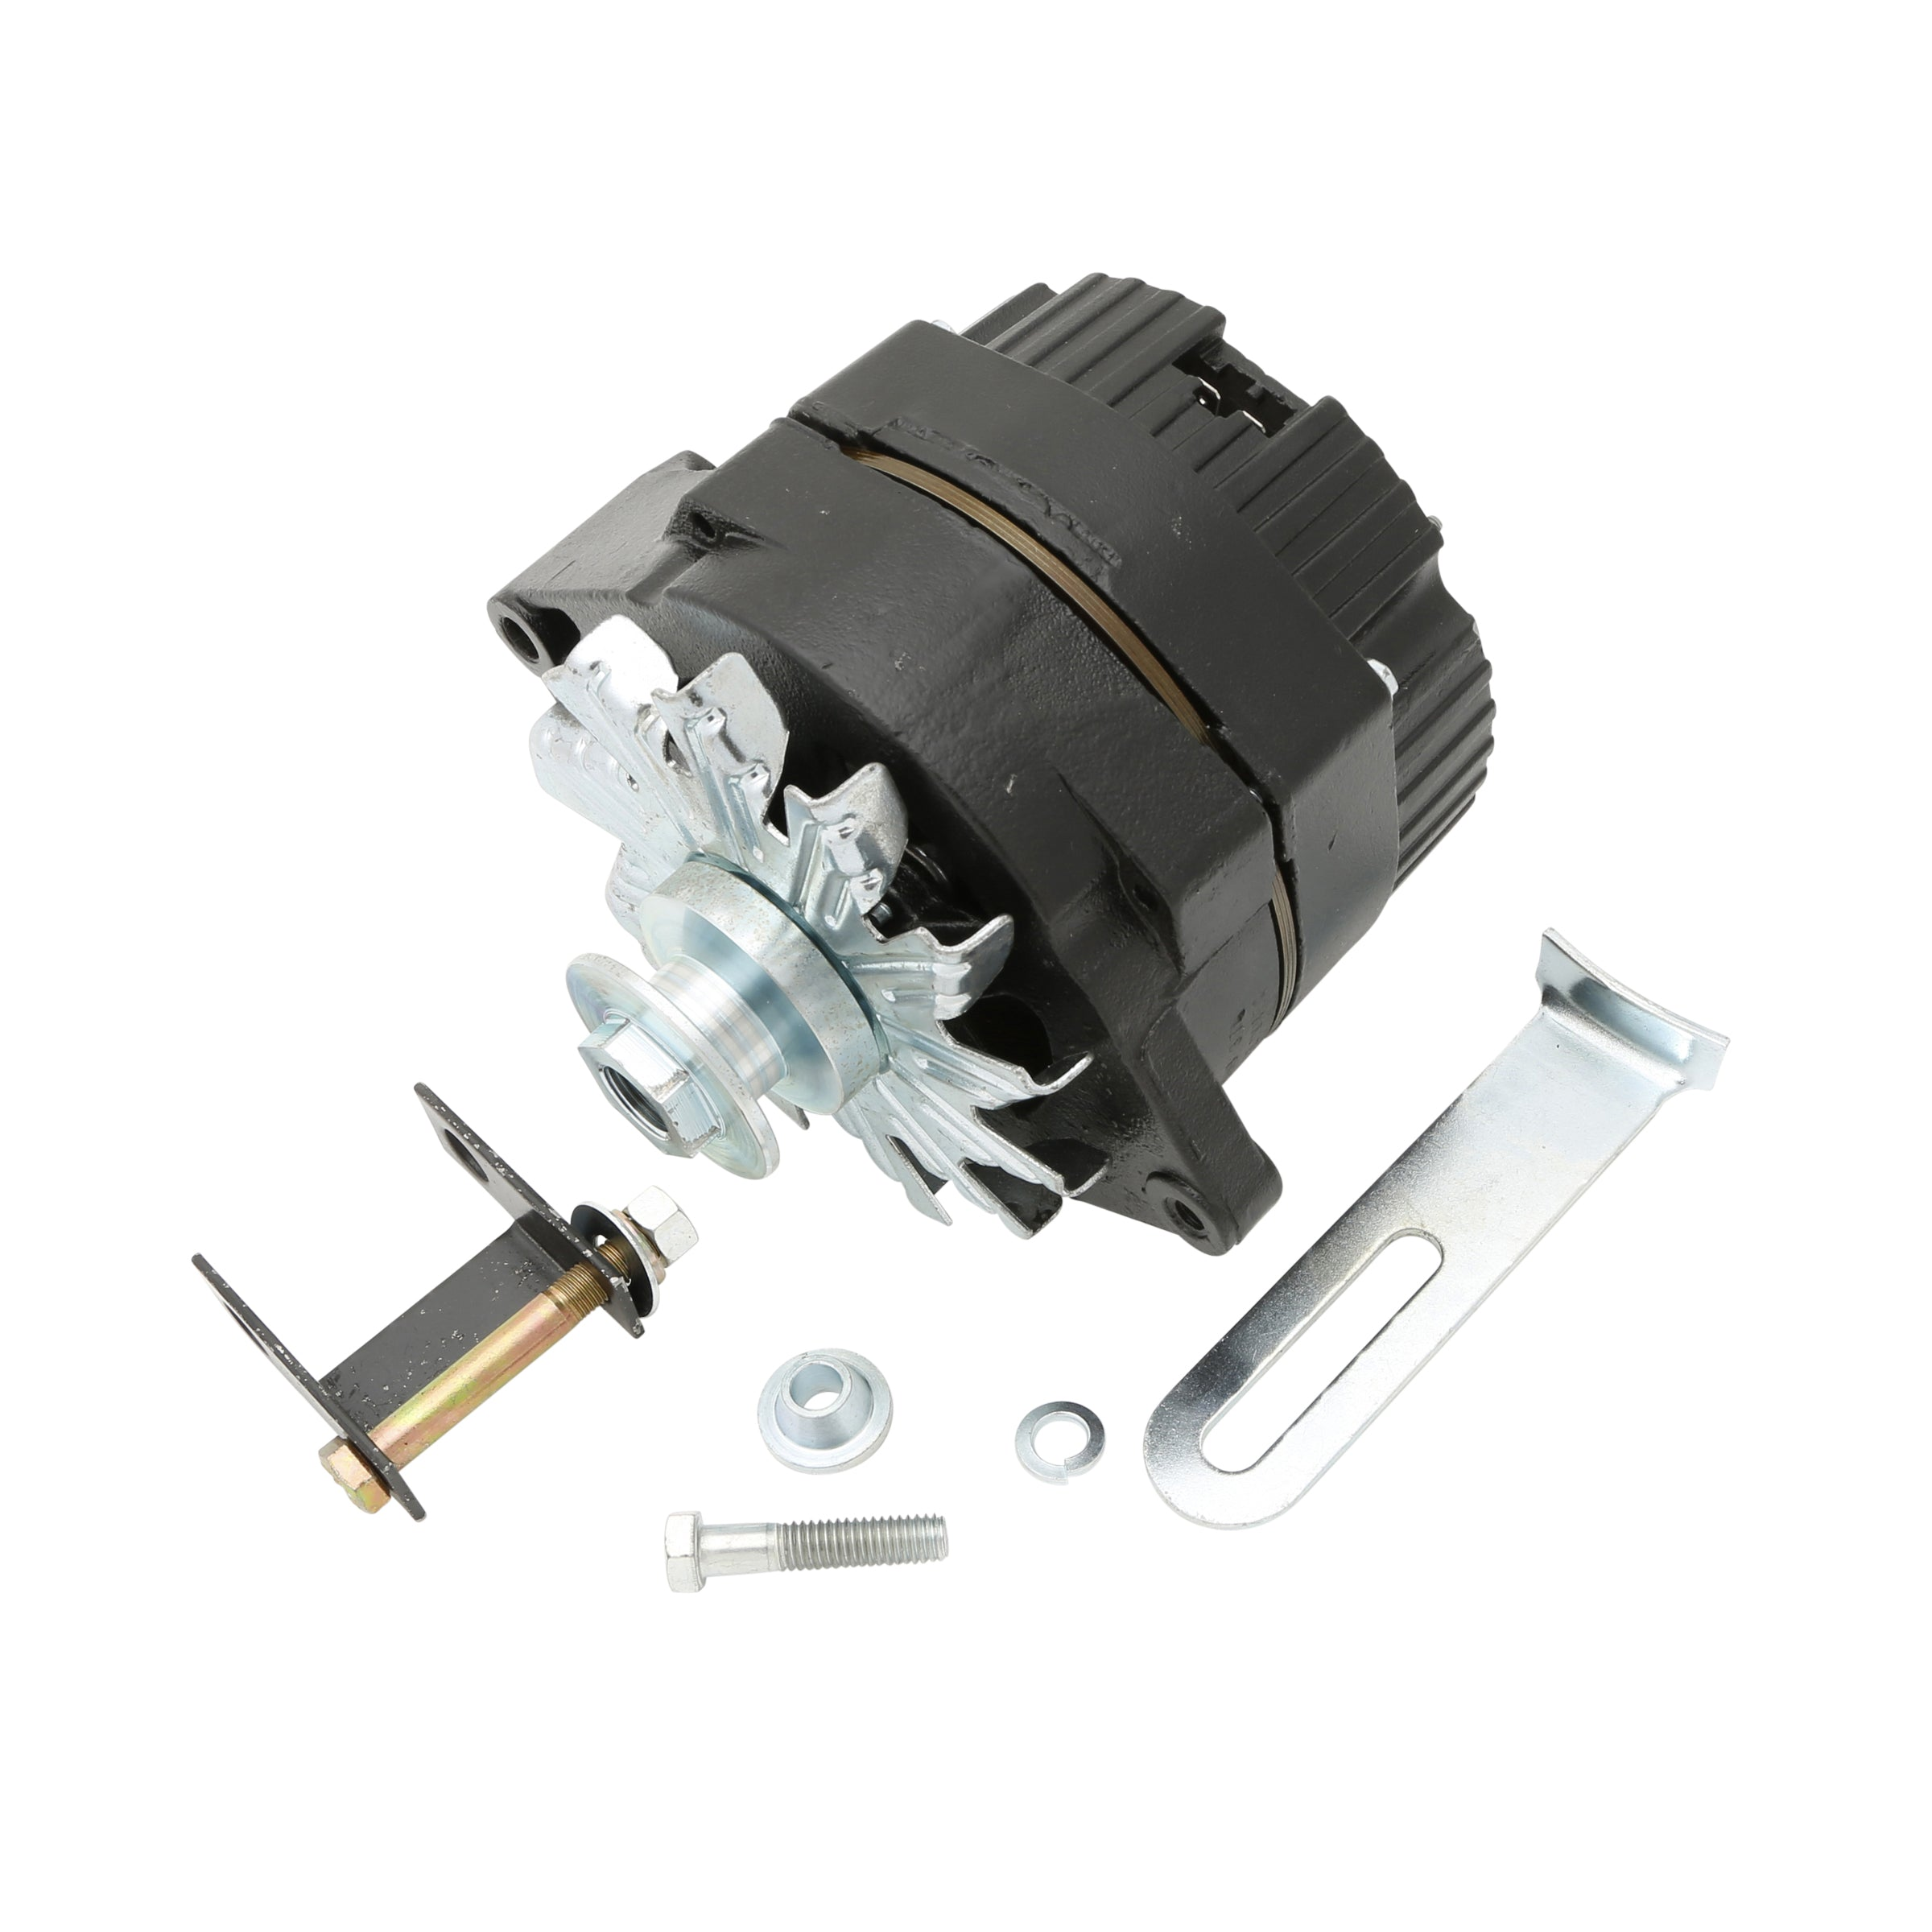 Alternator Kit (6 Volt - Positive Ground) • 1928-31 Model A Ford